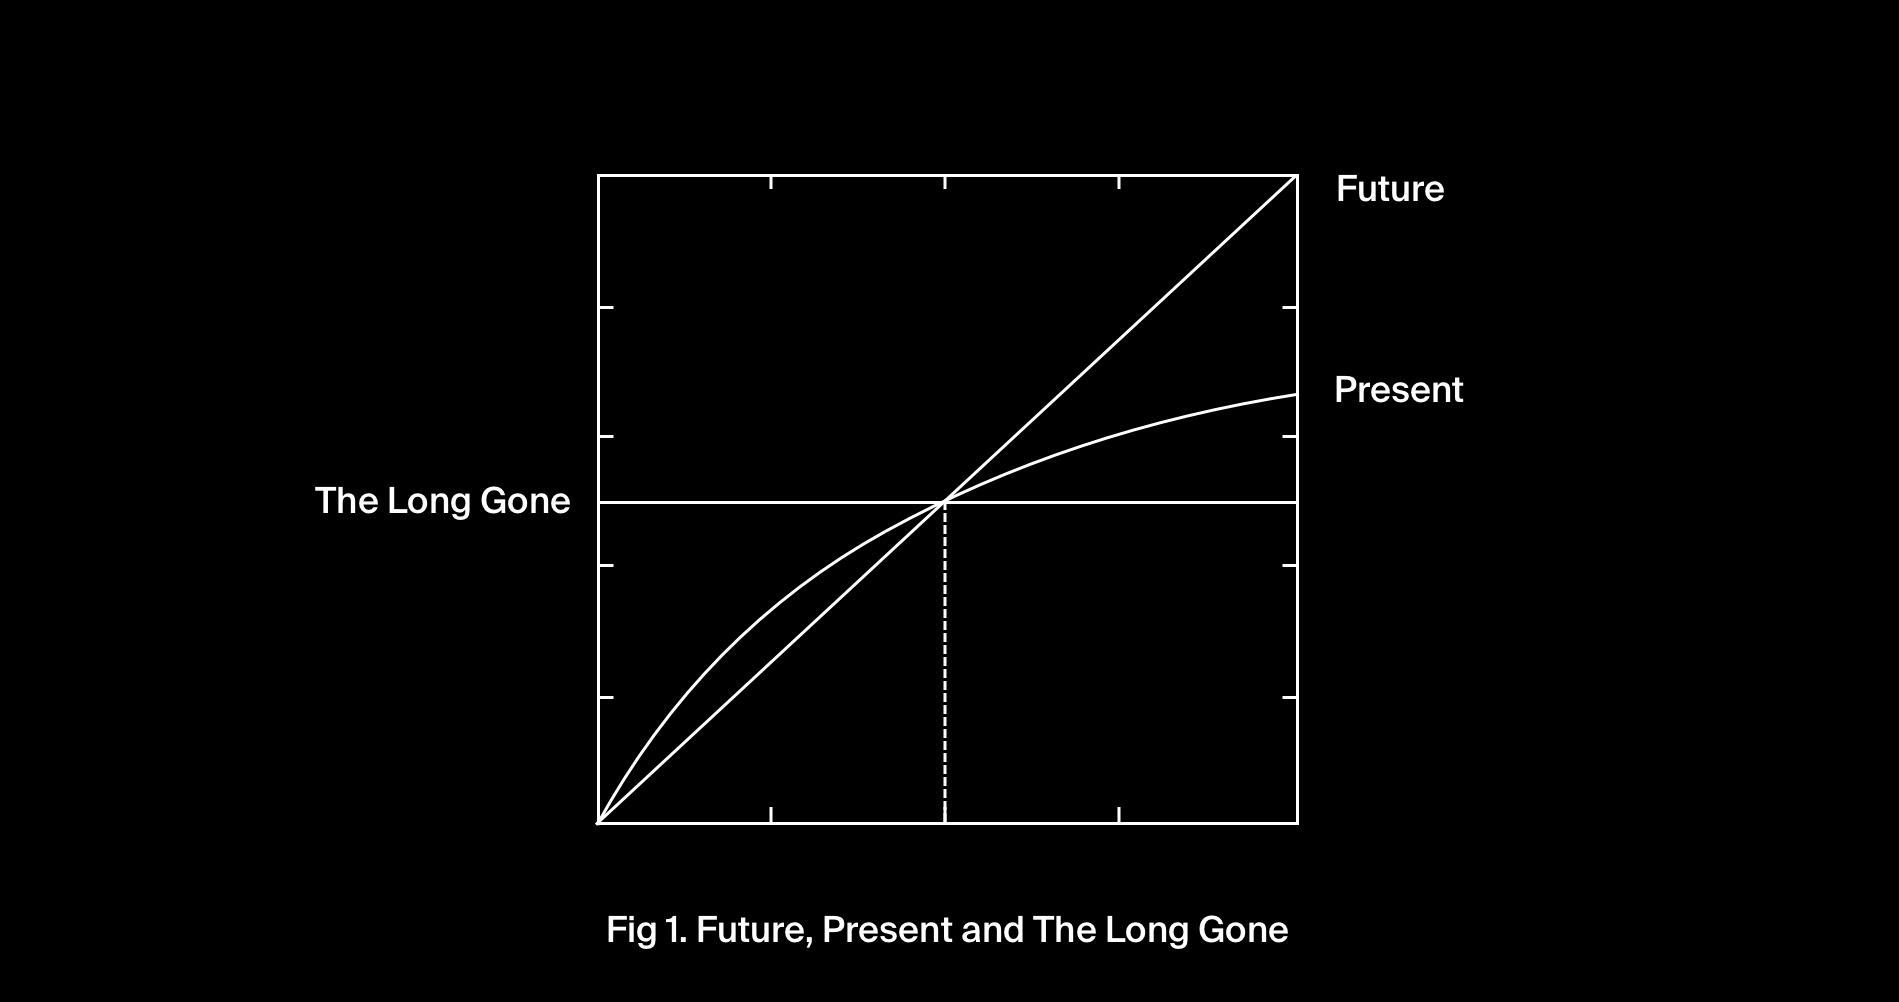 Fig 1. Future, Present and The Long Gone